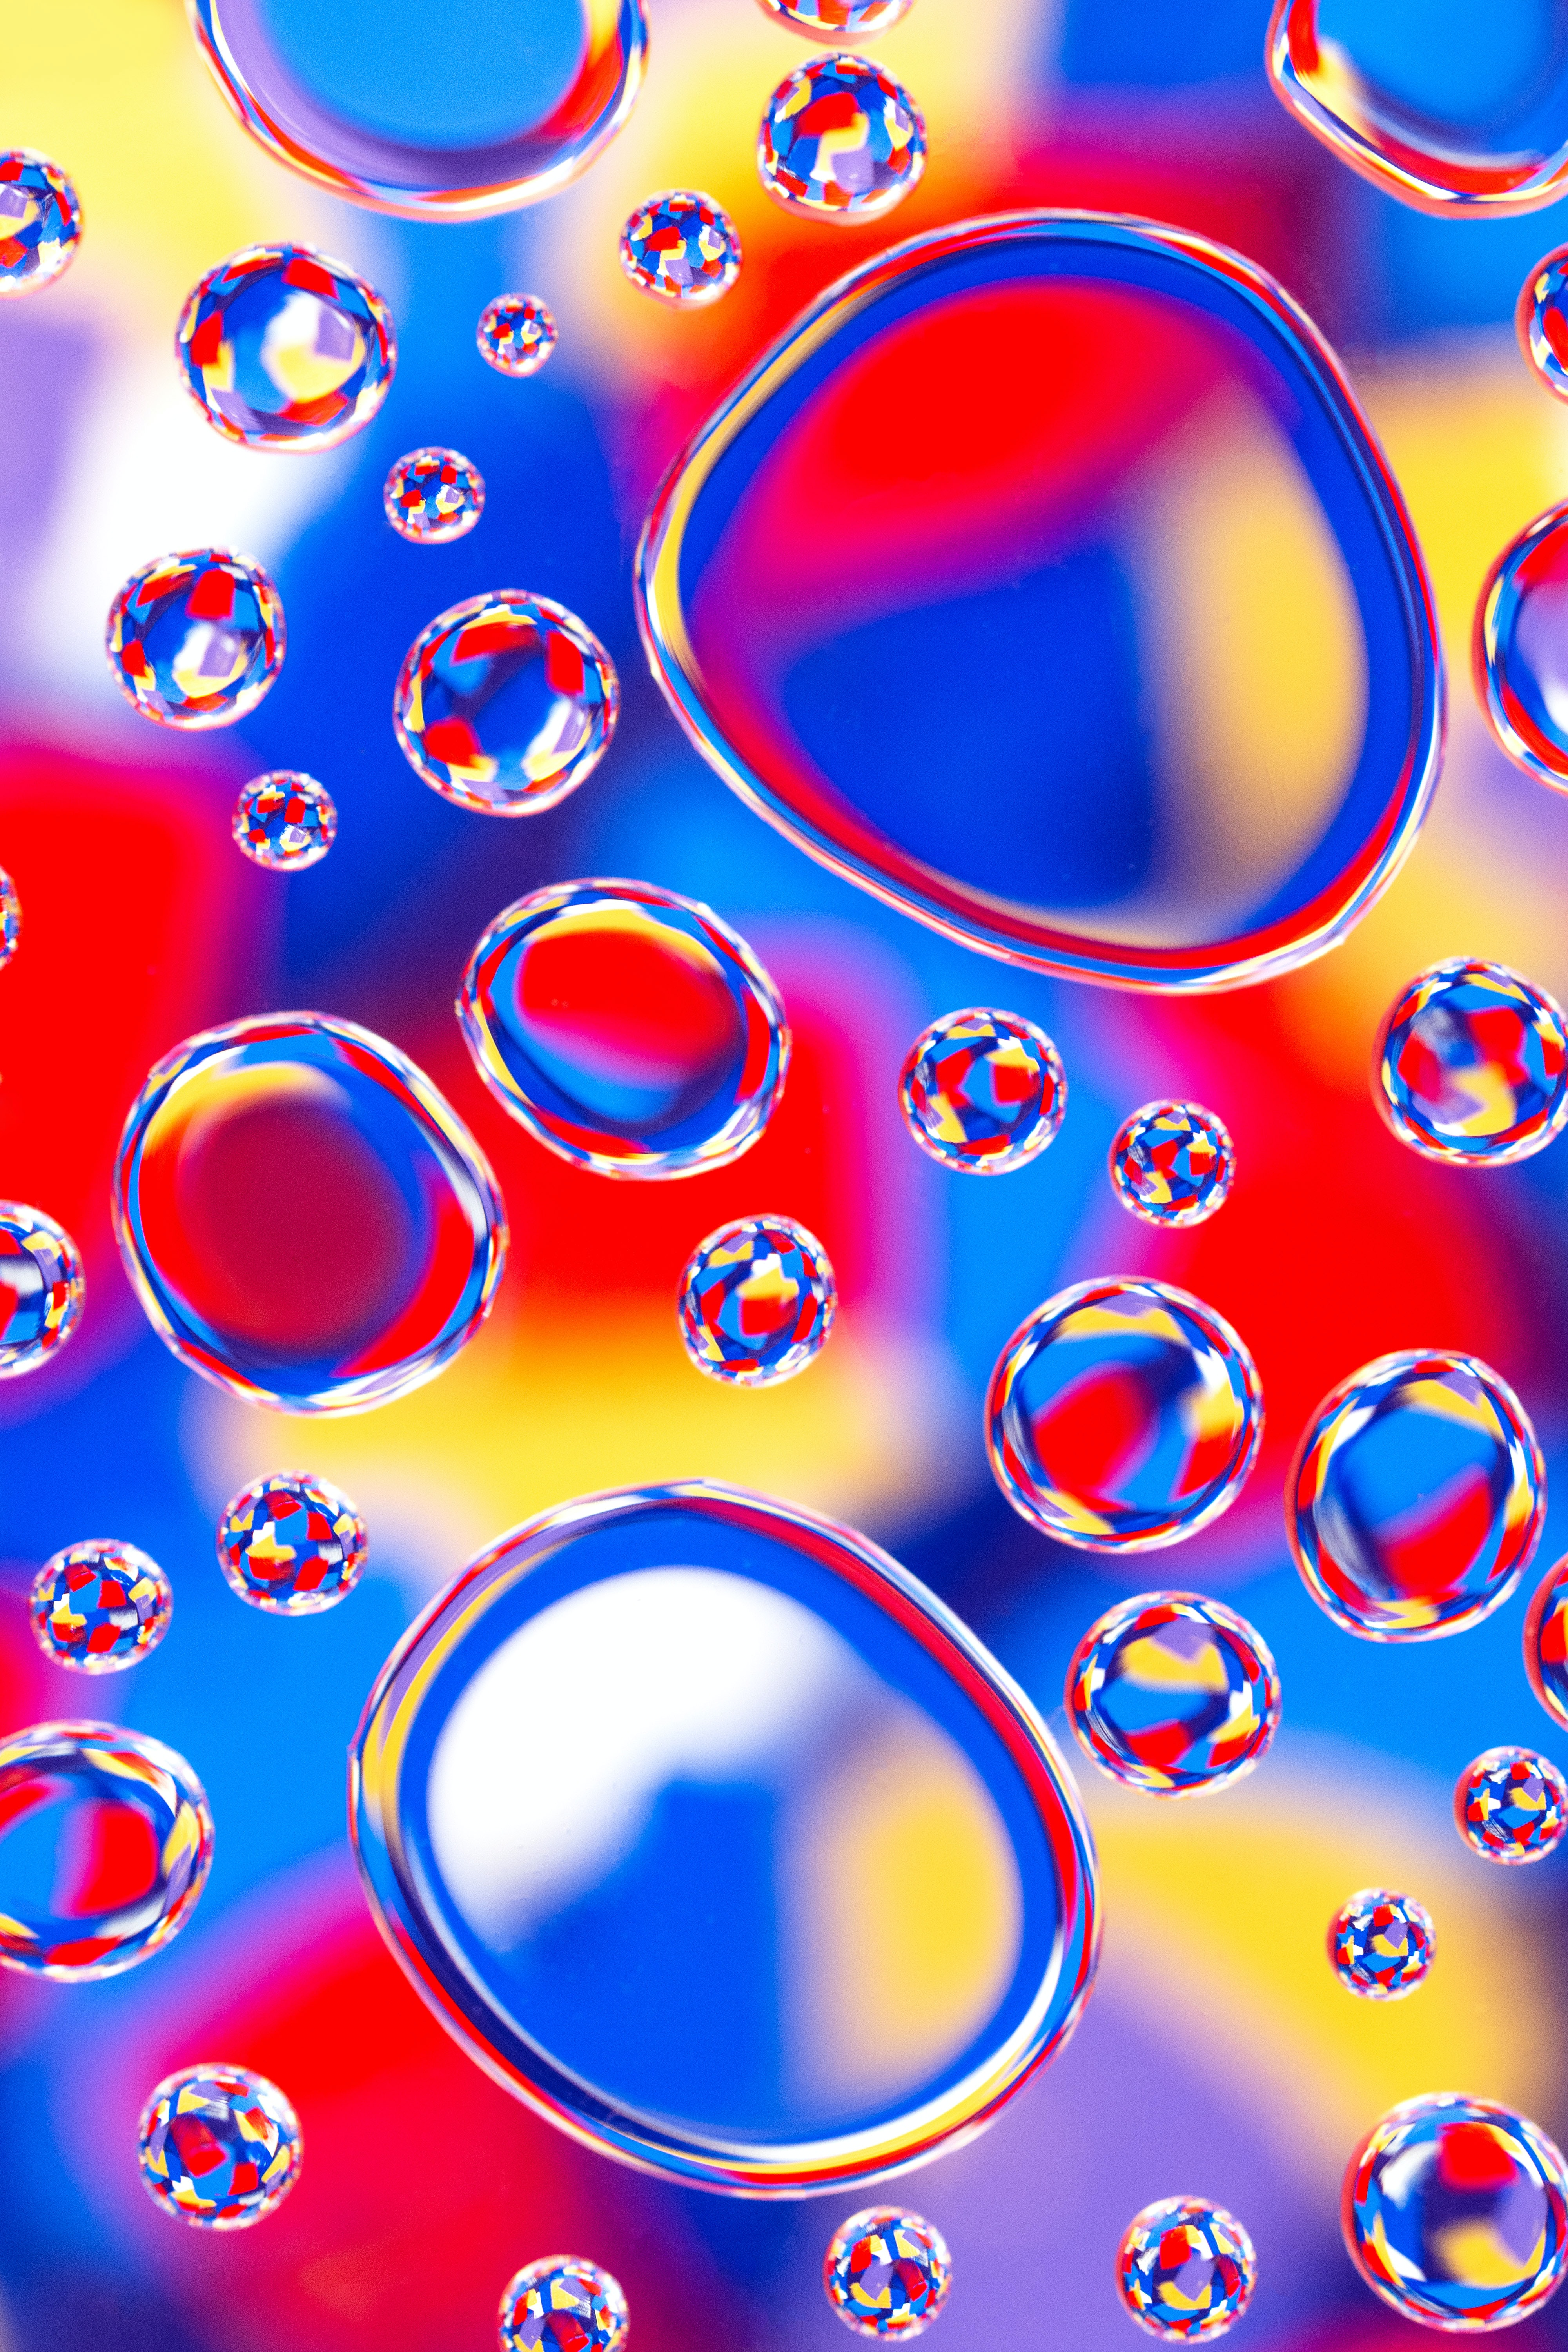 144611 download wallpaper Abstract, Form, Water, Multicolored, Motley, Reflection, Bubbles screensavers and pictures for free